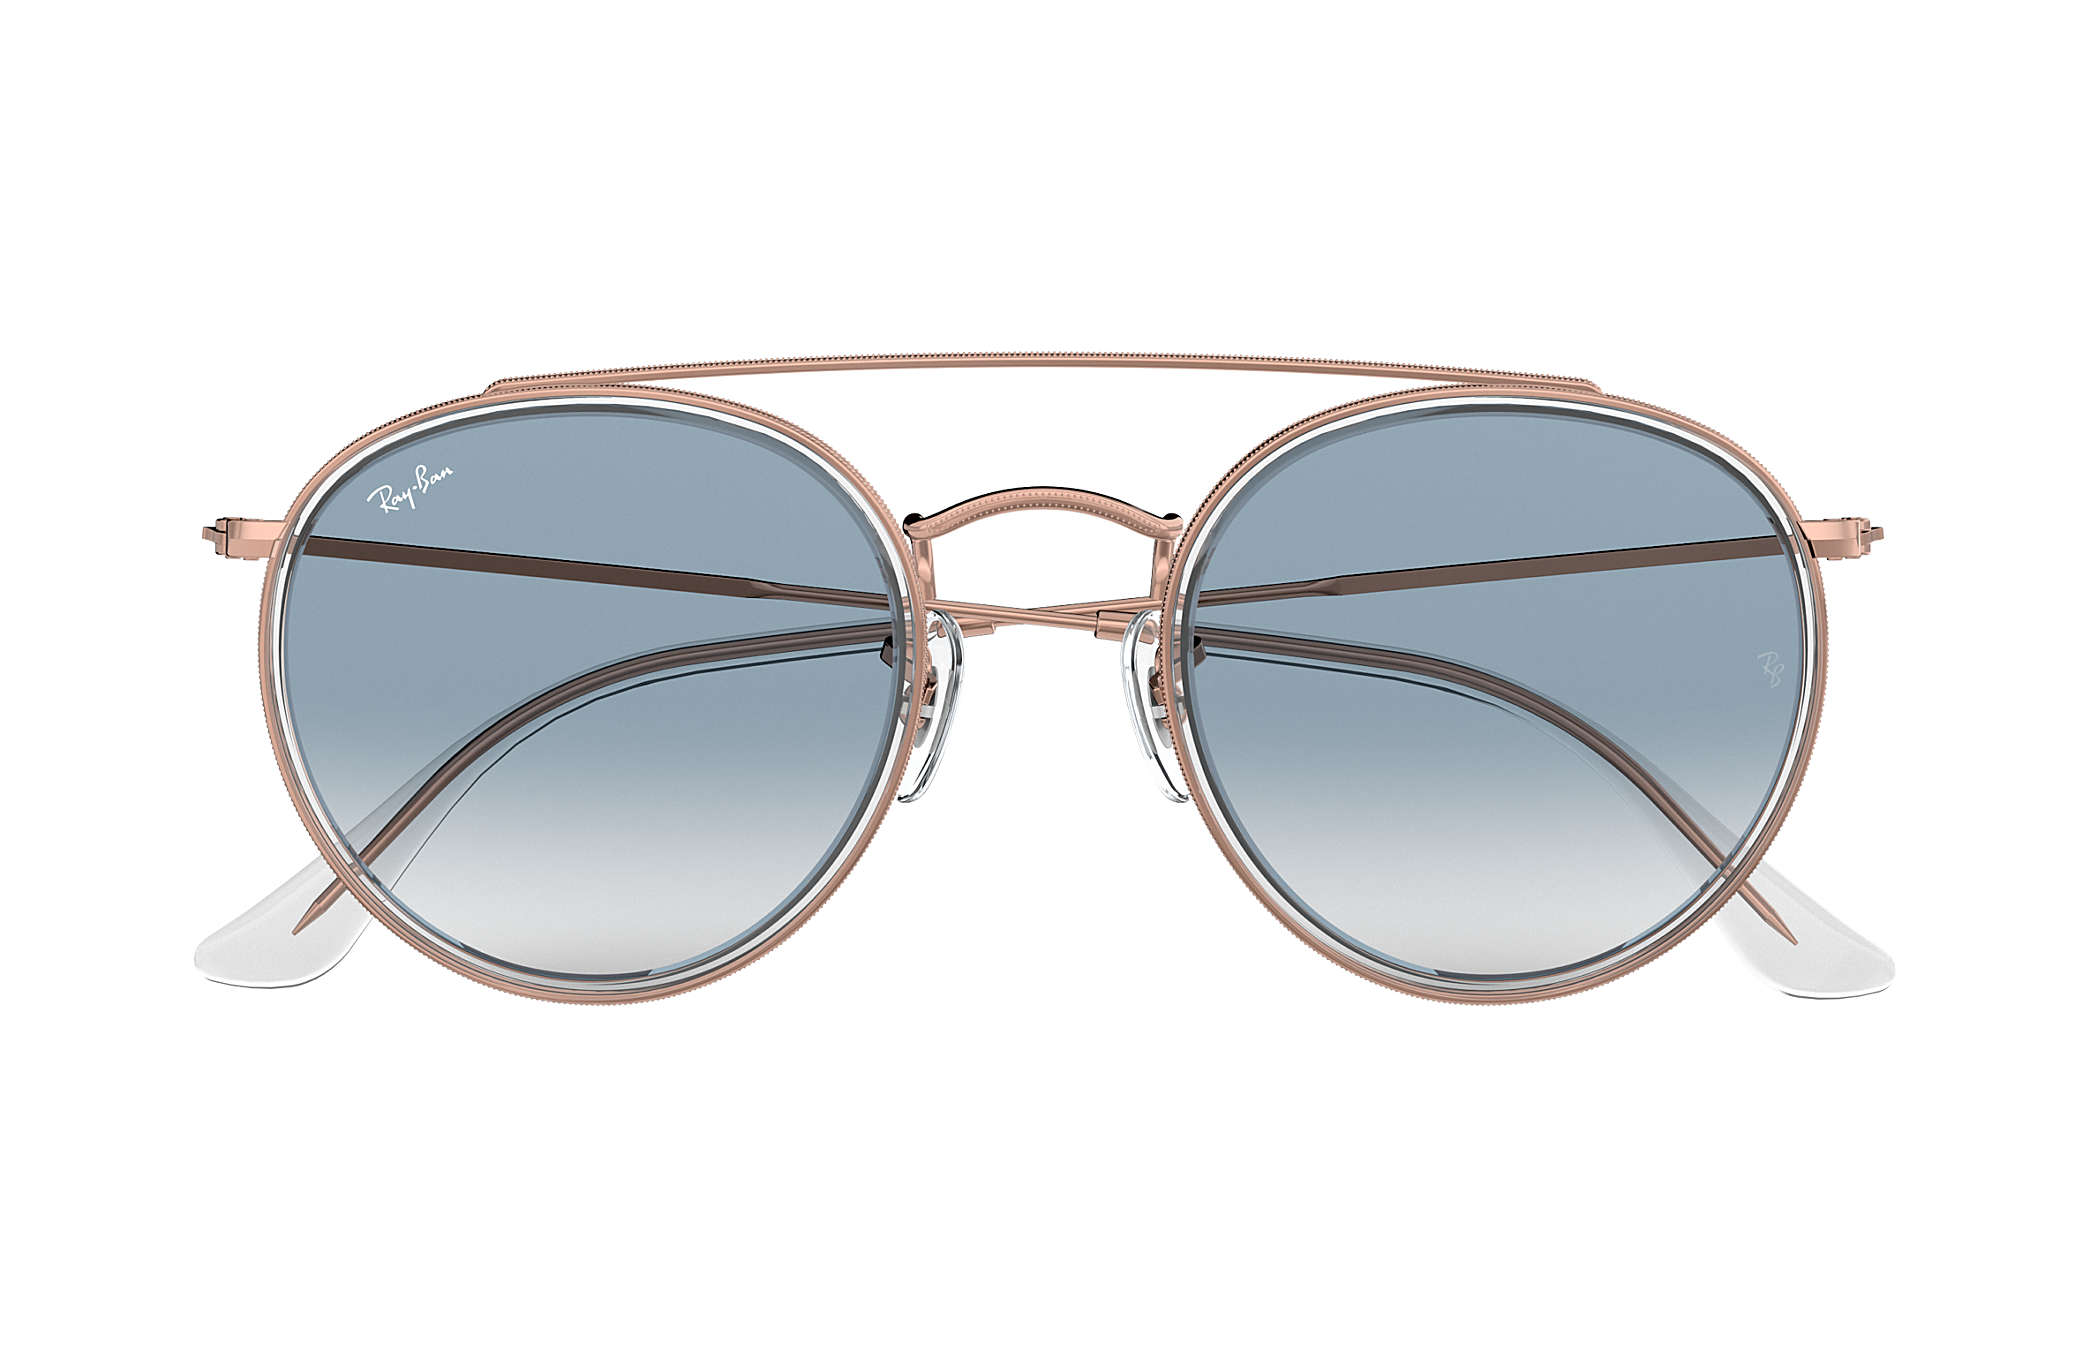 ... Ray-Ban 0RB3647N-ROUND DOUBLE BRIDGE Transparent  Bronze-Copper SUN ... 312542f85c